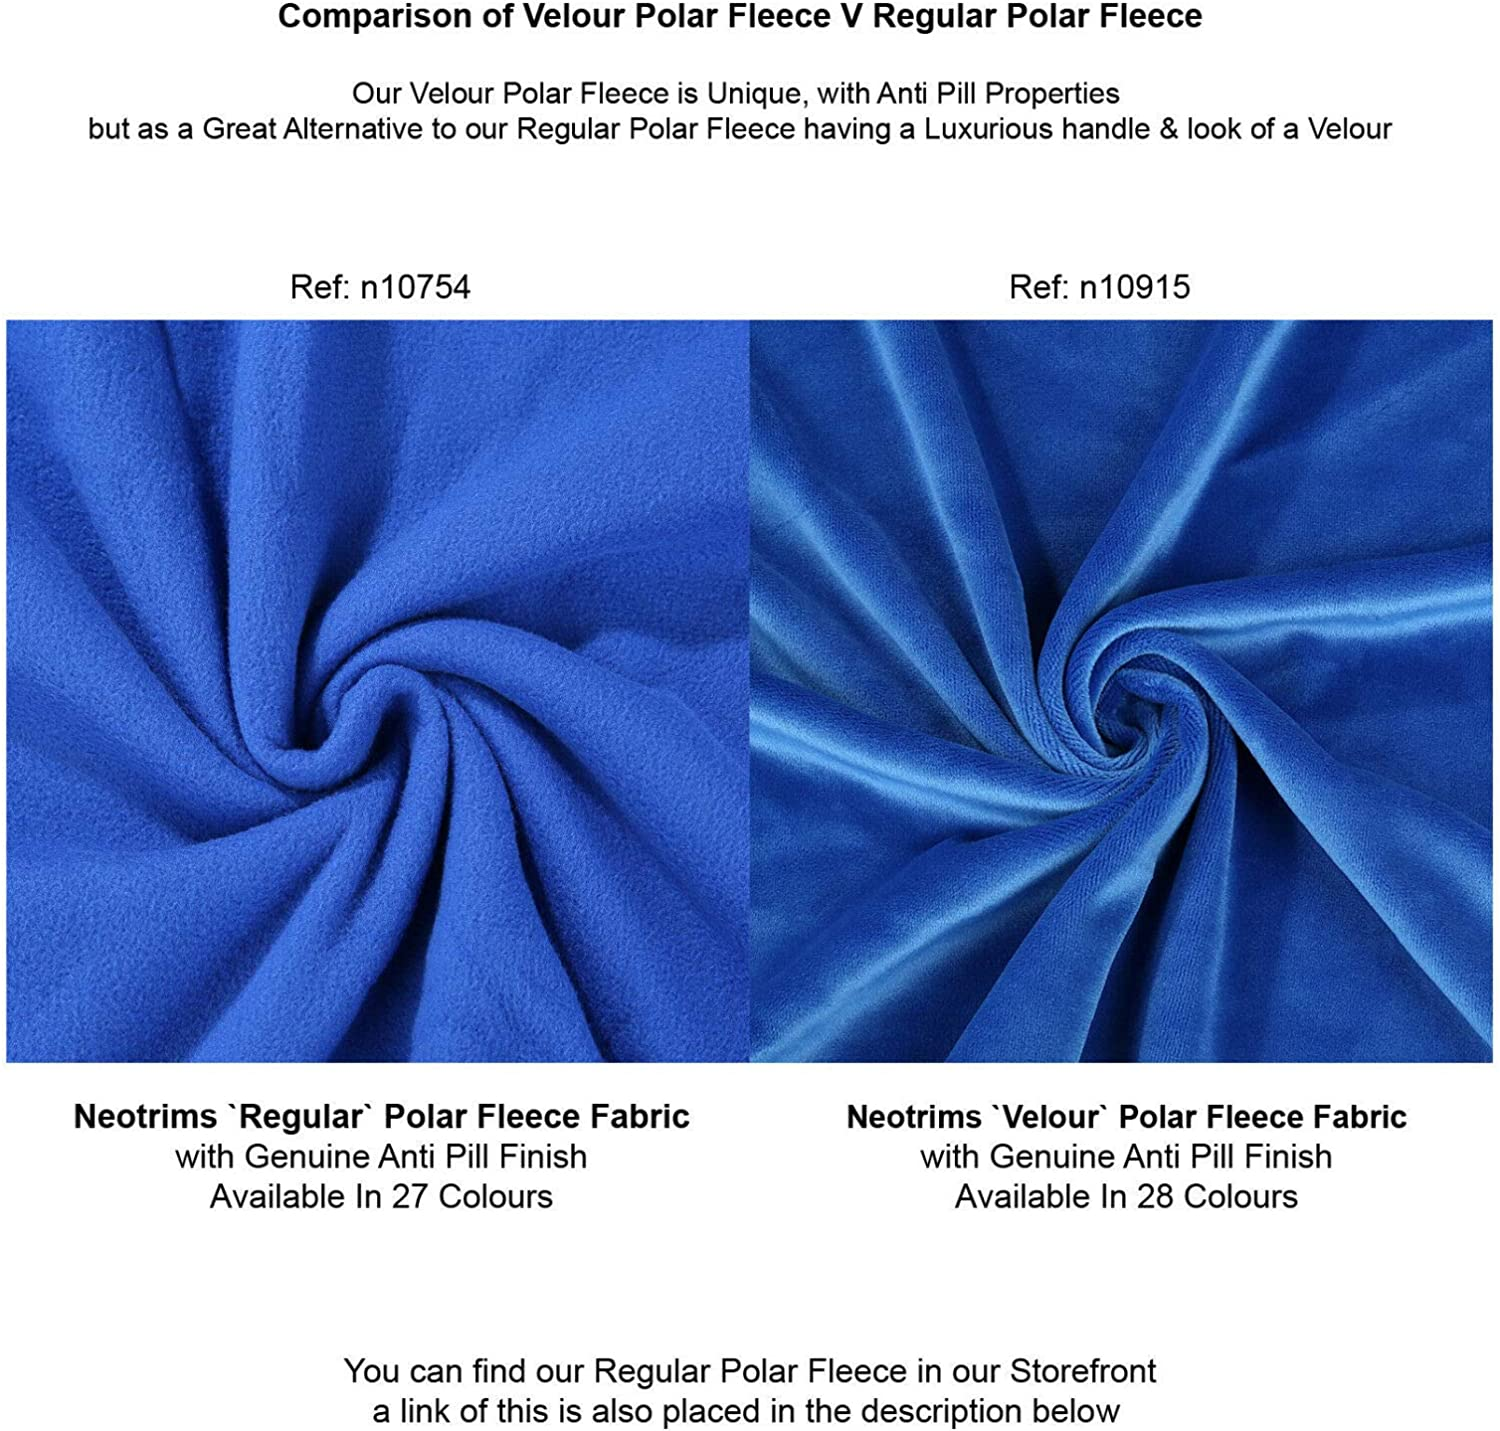 Great Drape /& Handle Quality Material 28 Fashion Colours Velour Polar Fleece Anti Pill Fabric Natural Stretch Pile for Garments Home D/écor /& Crafts. Medium Weight